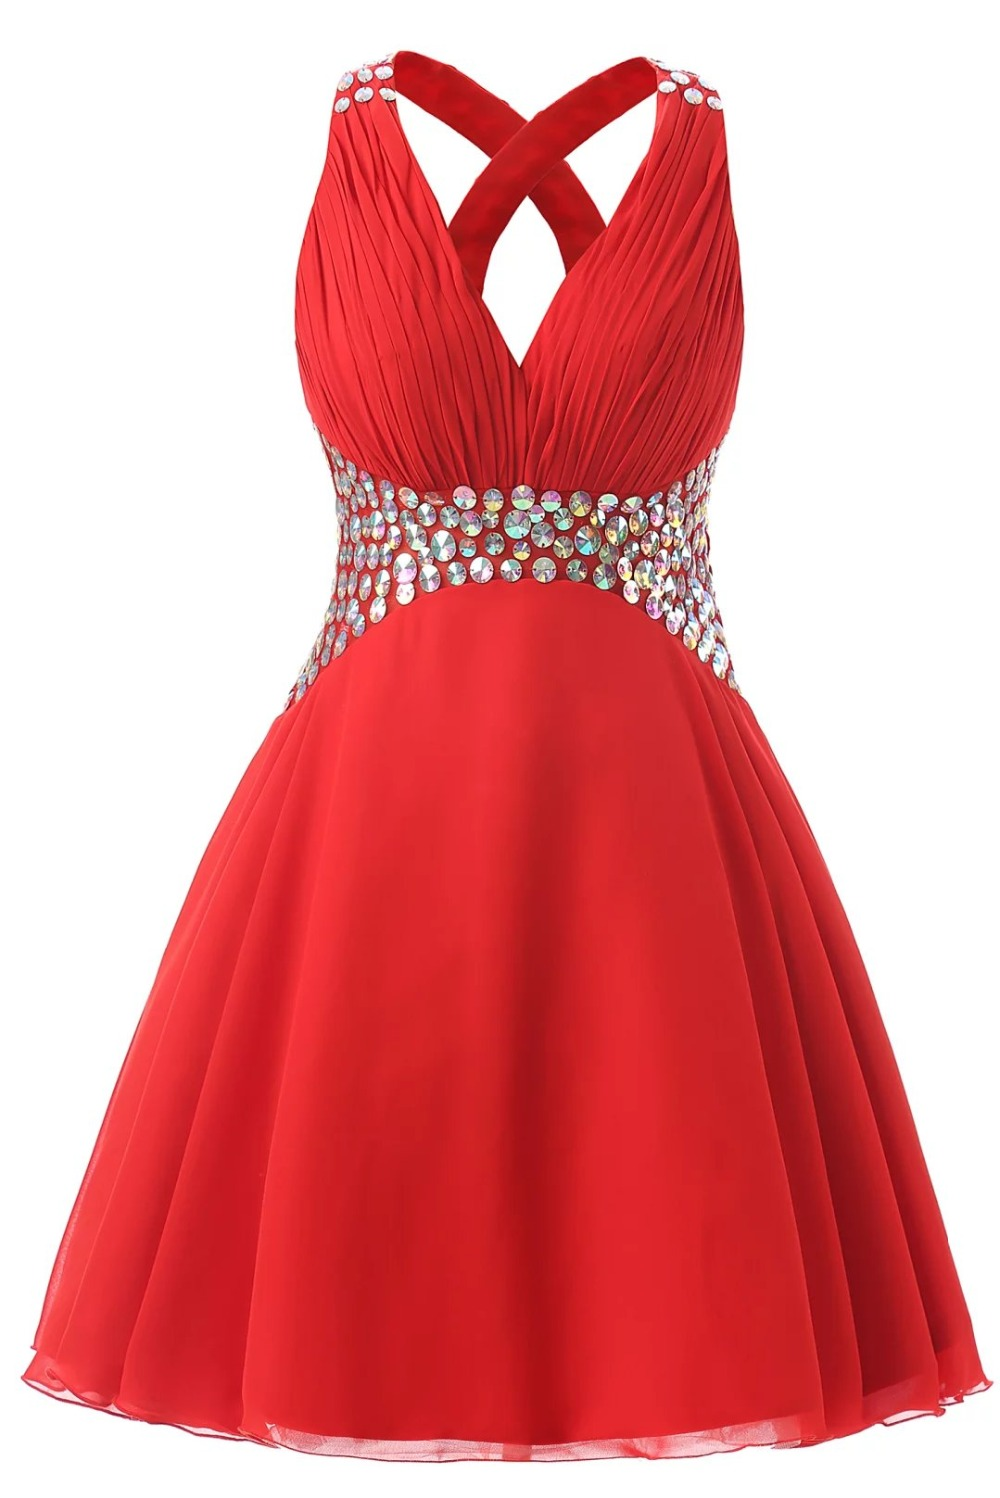 Red homecoming dresses on sale